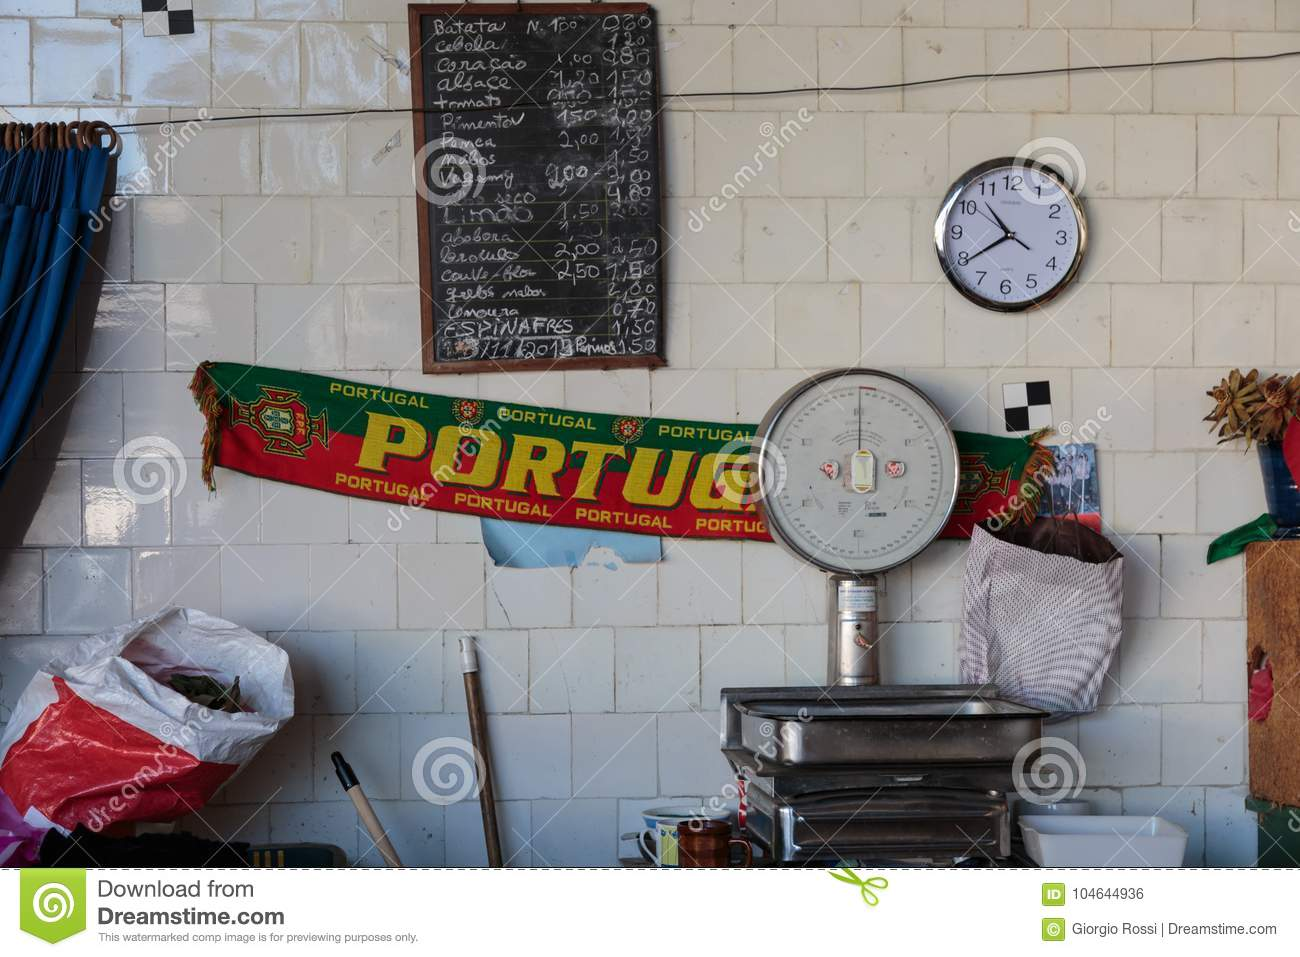 Portugal Scarf, Food Scale, Watch and Price List on White Tile Wall inside Antique Bolhao Market: in Porto, Portugal